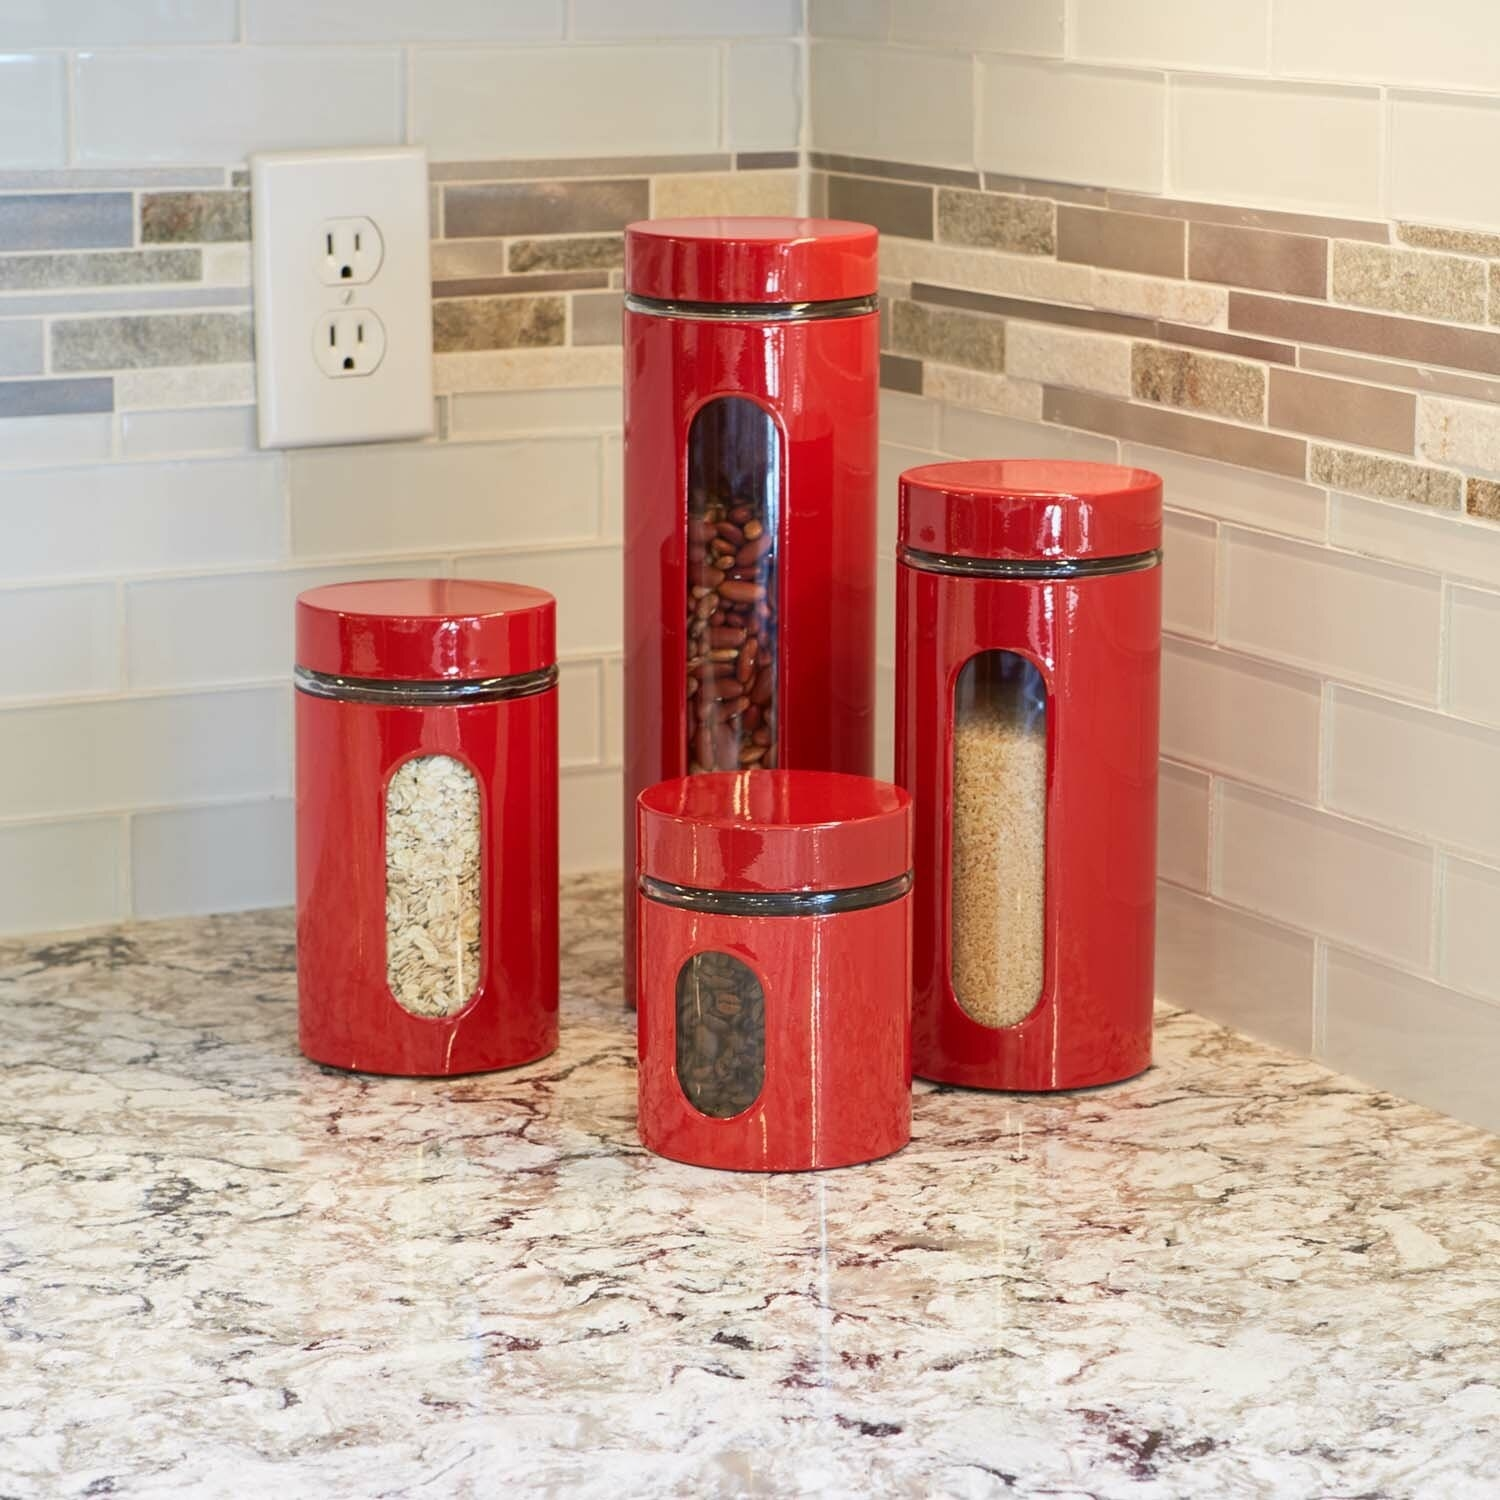 The canister set in red